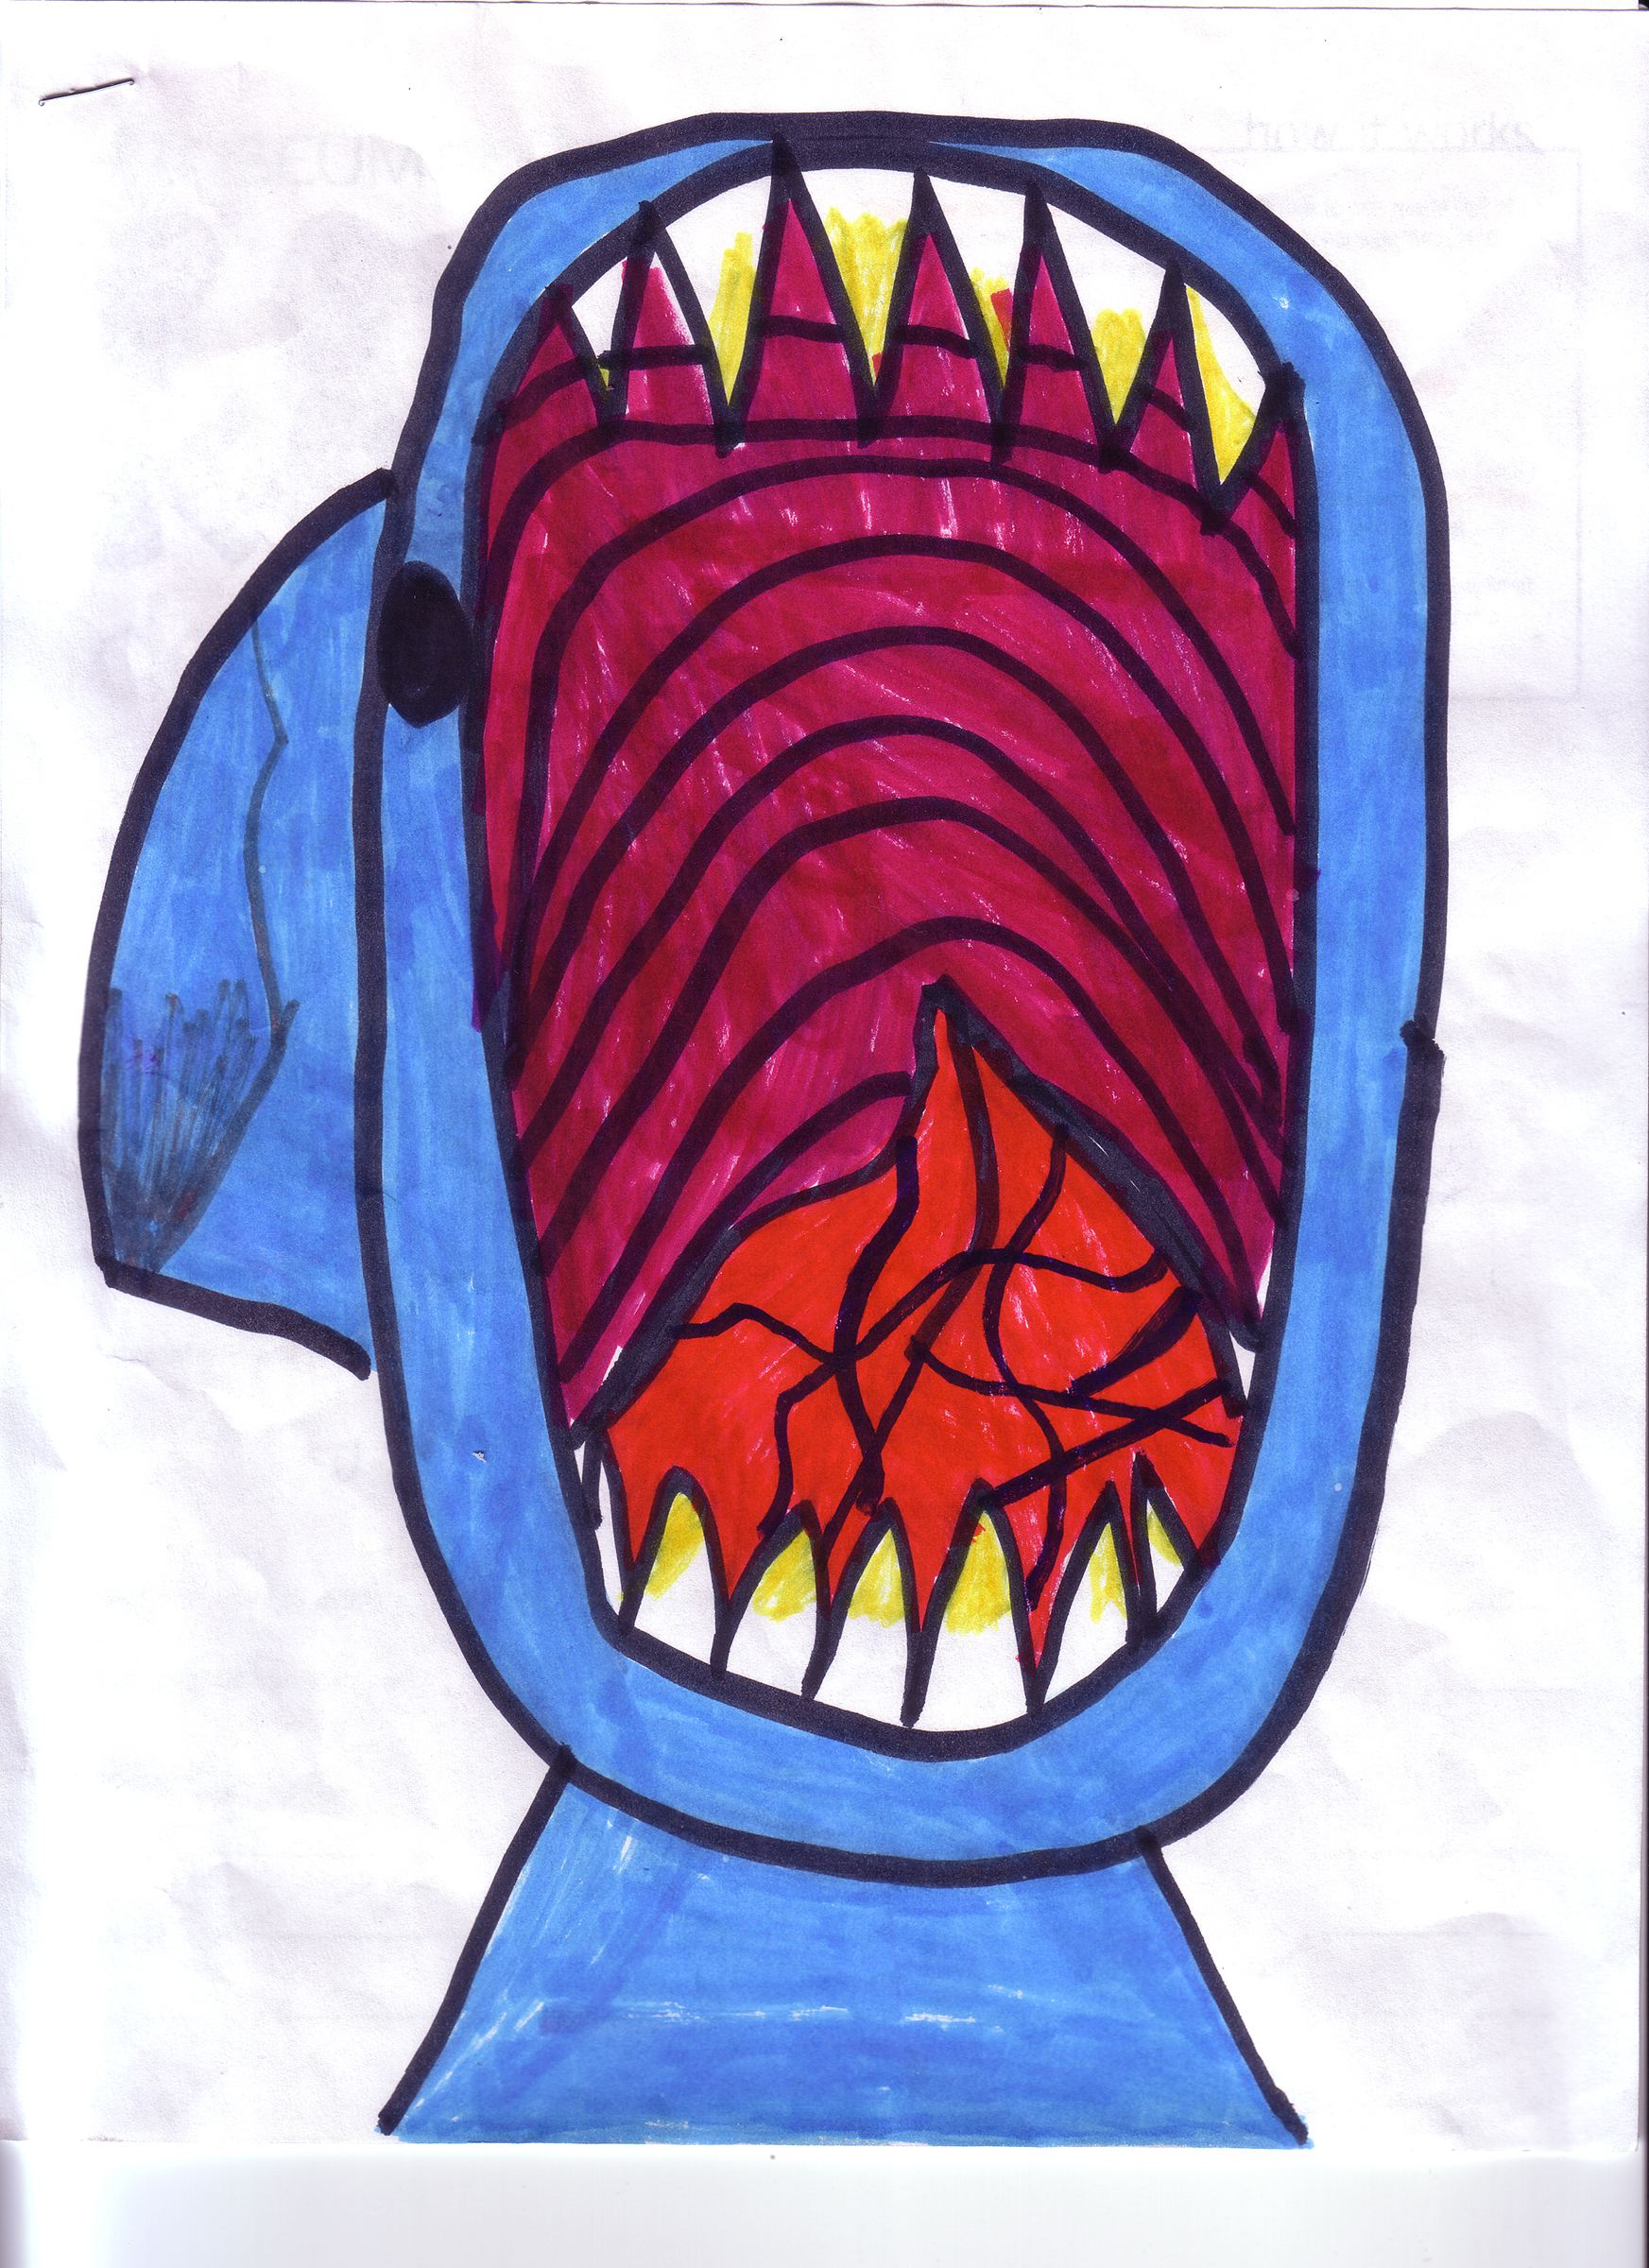 Erica Hankins (age 8). Shark Attack!,  2007.Ink on paper;11 x 8 1/2 in.Collection of Museum of Glass, Tacoma, Washington.   Shark Attack!  artist's statement:  It's scary!